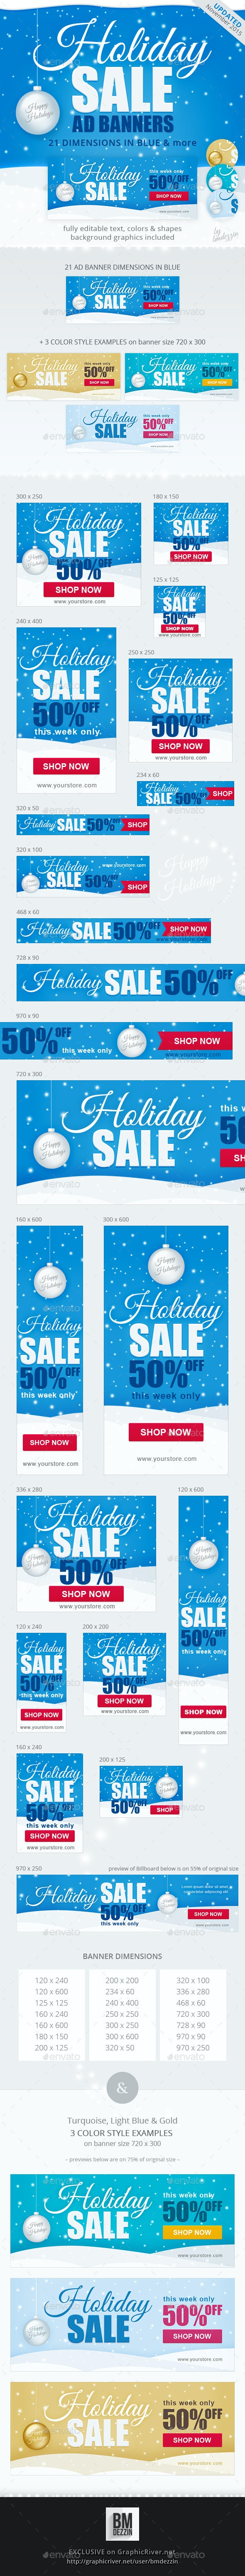 Holiday Sale Web Ad Banners - Banners & Ads Web Elements